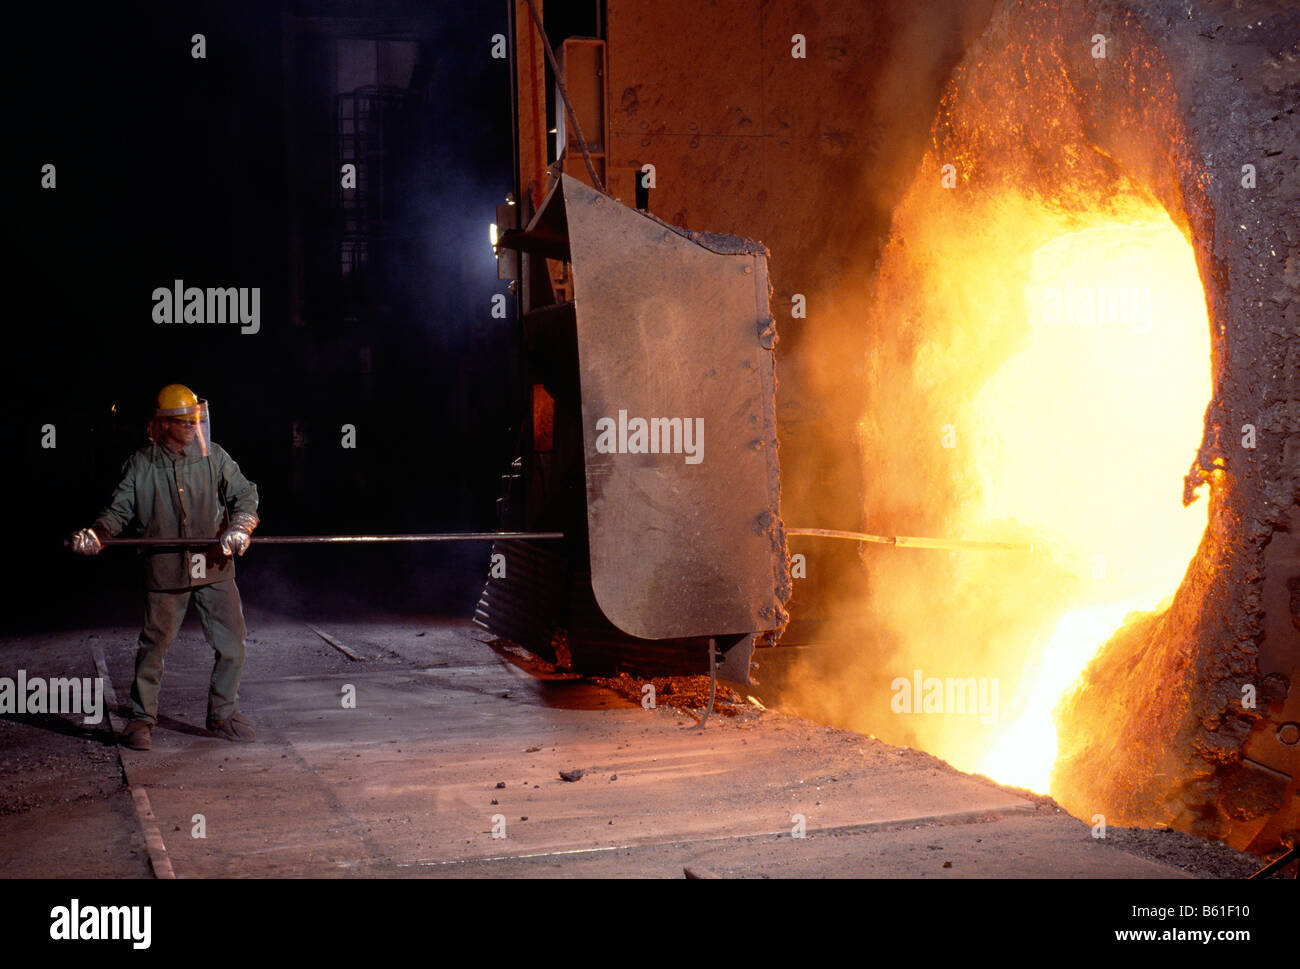 fire steel stock photos fire steel stock images alamy. Black Bedroom Furniture Sets. Home Design Ideas